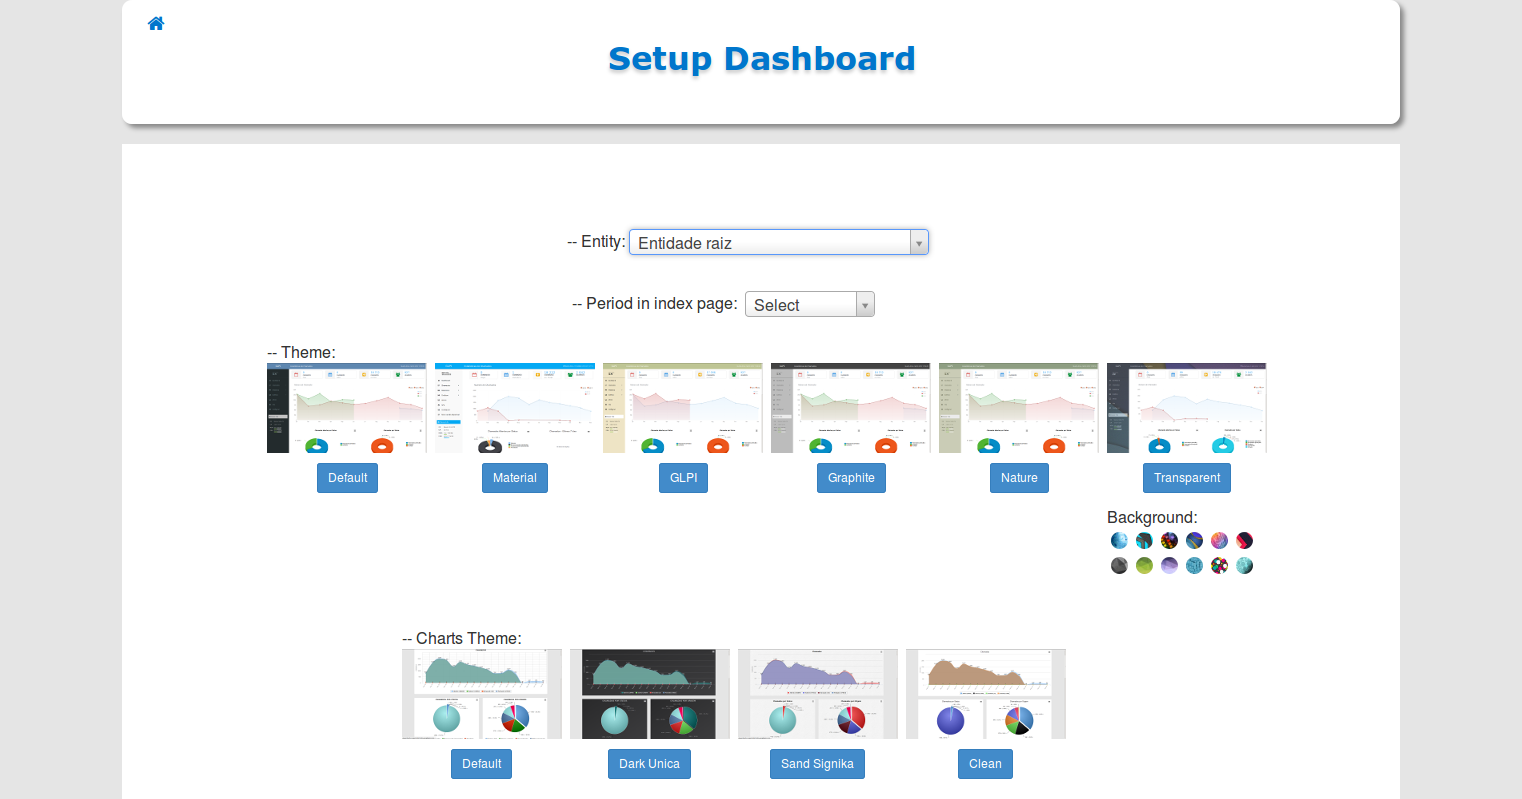 Dashboard Setup